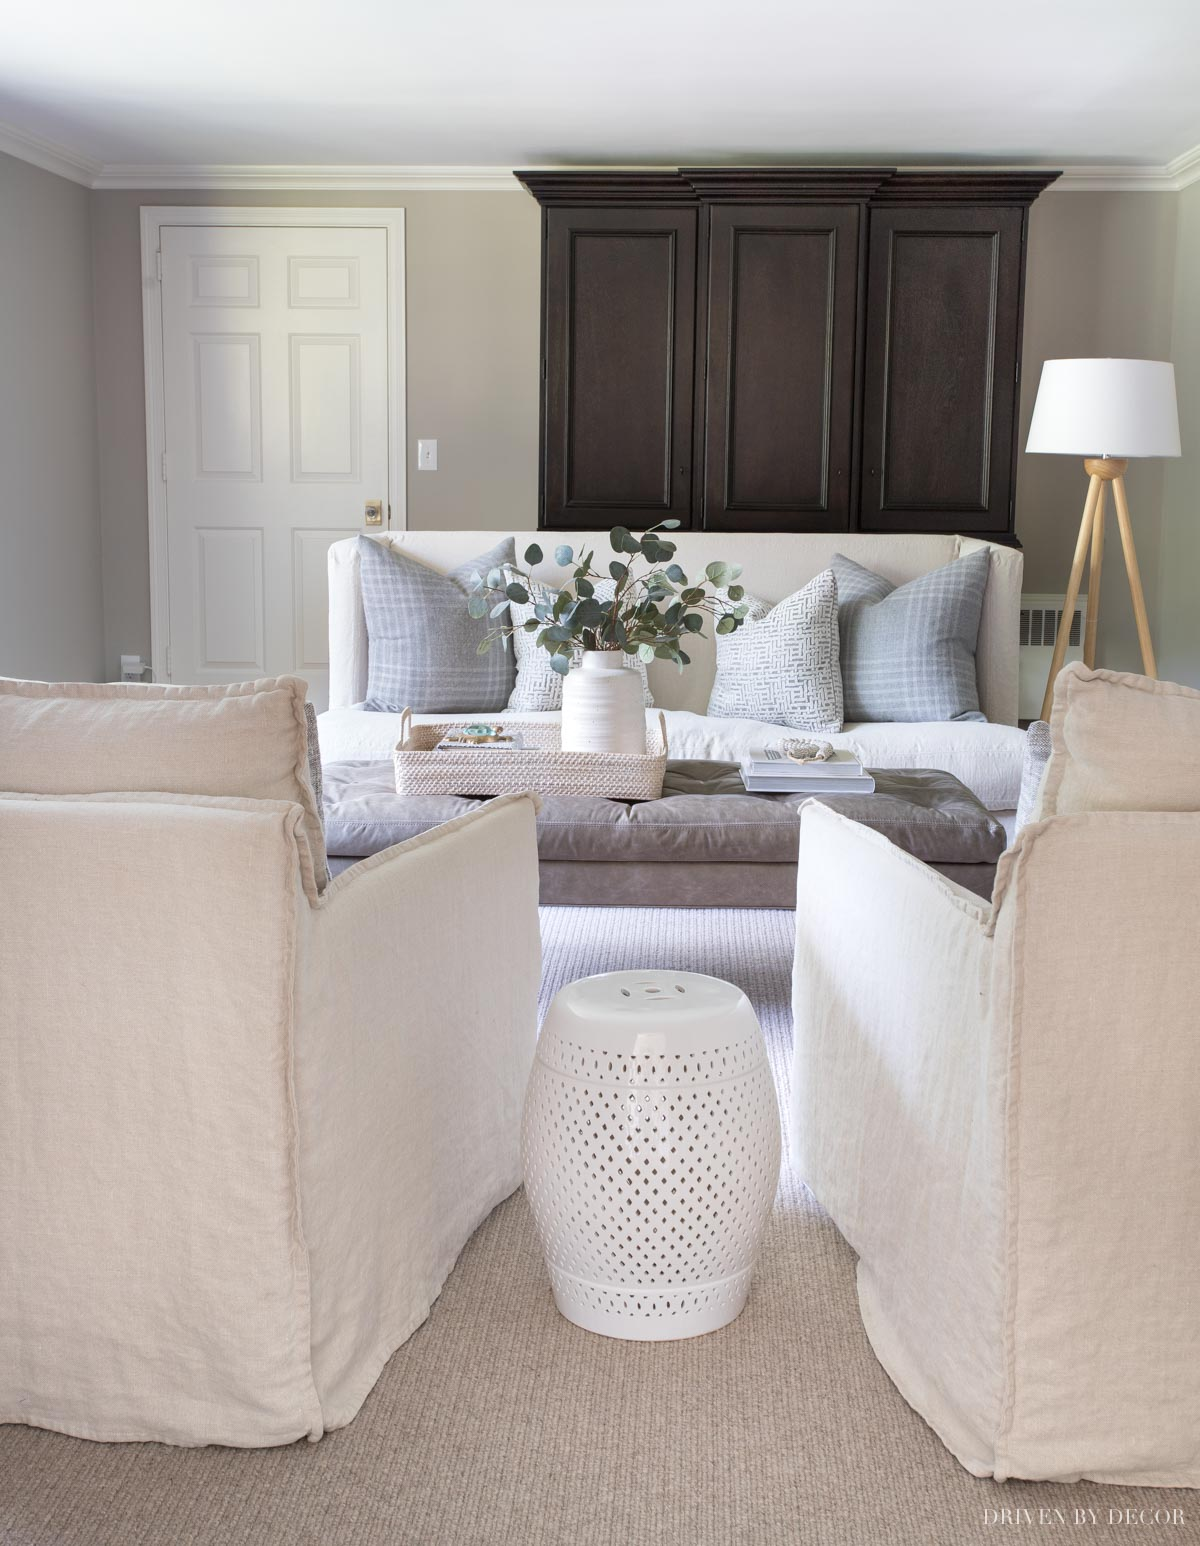 Our living room painted in Sherwin Williams Anew Gray